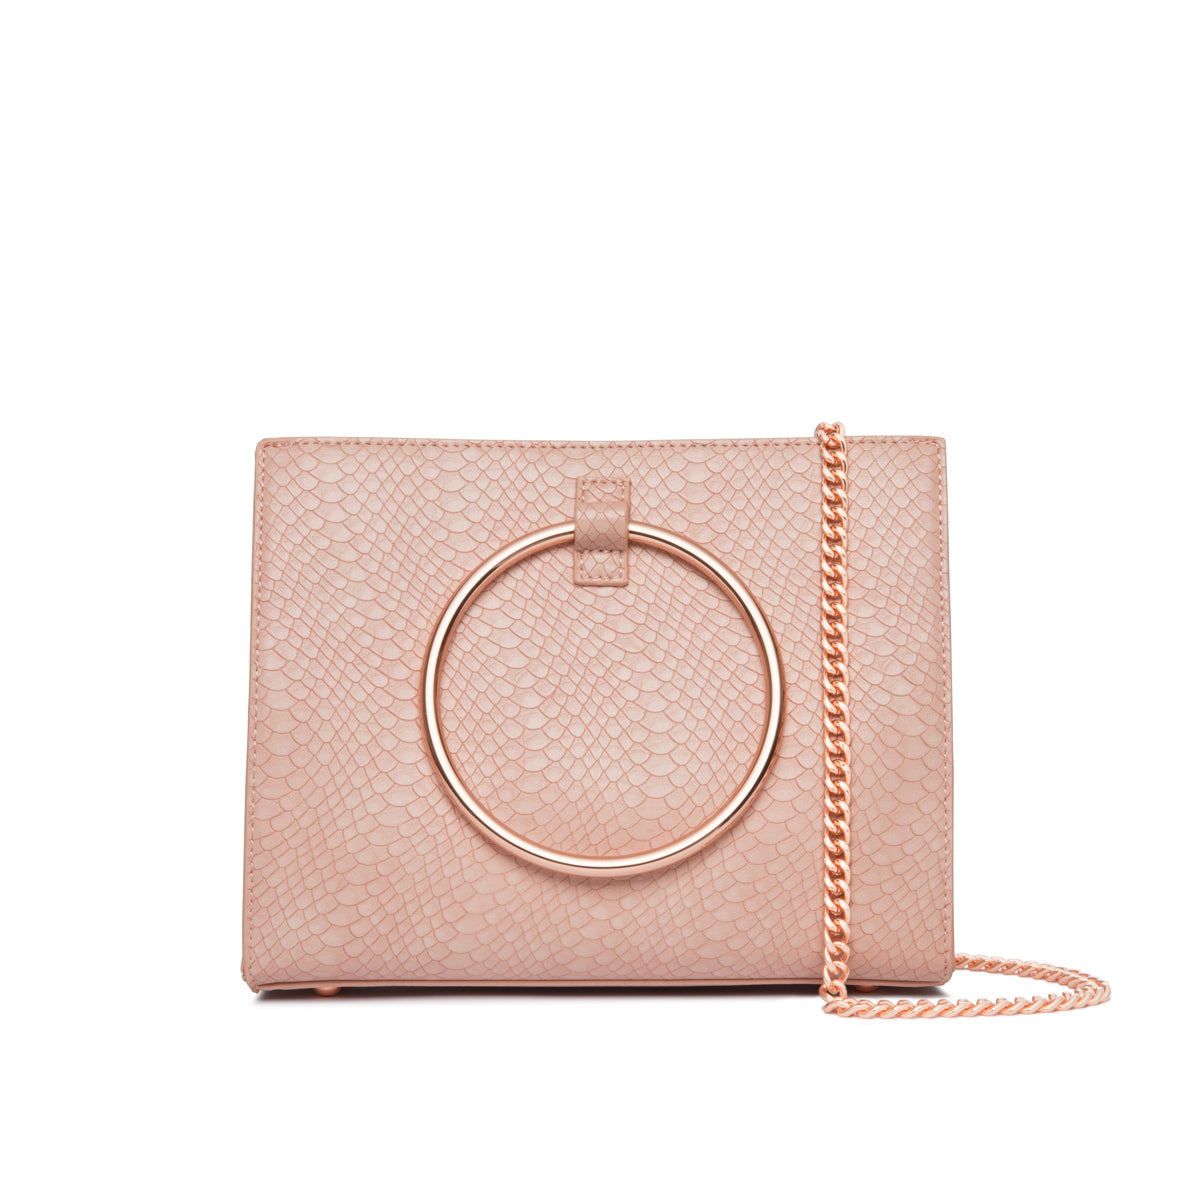 Sac à main Moda (Rose Oeillet/Rose Gold)